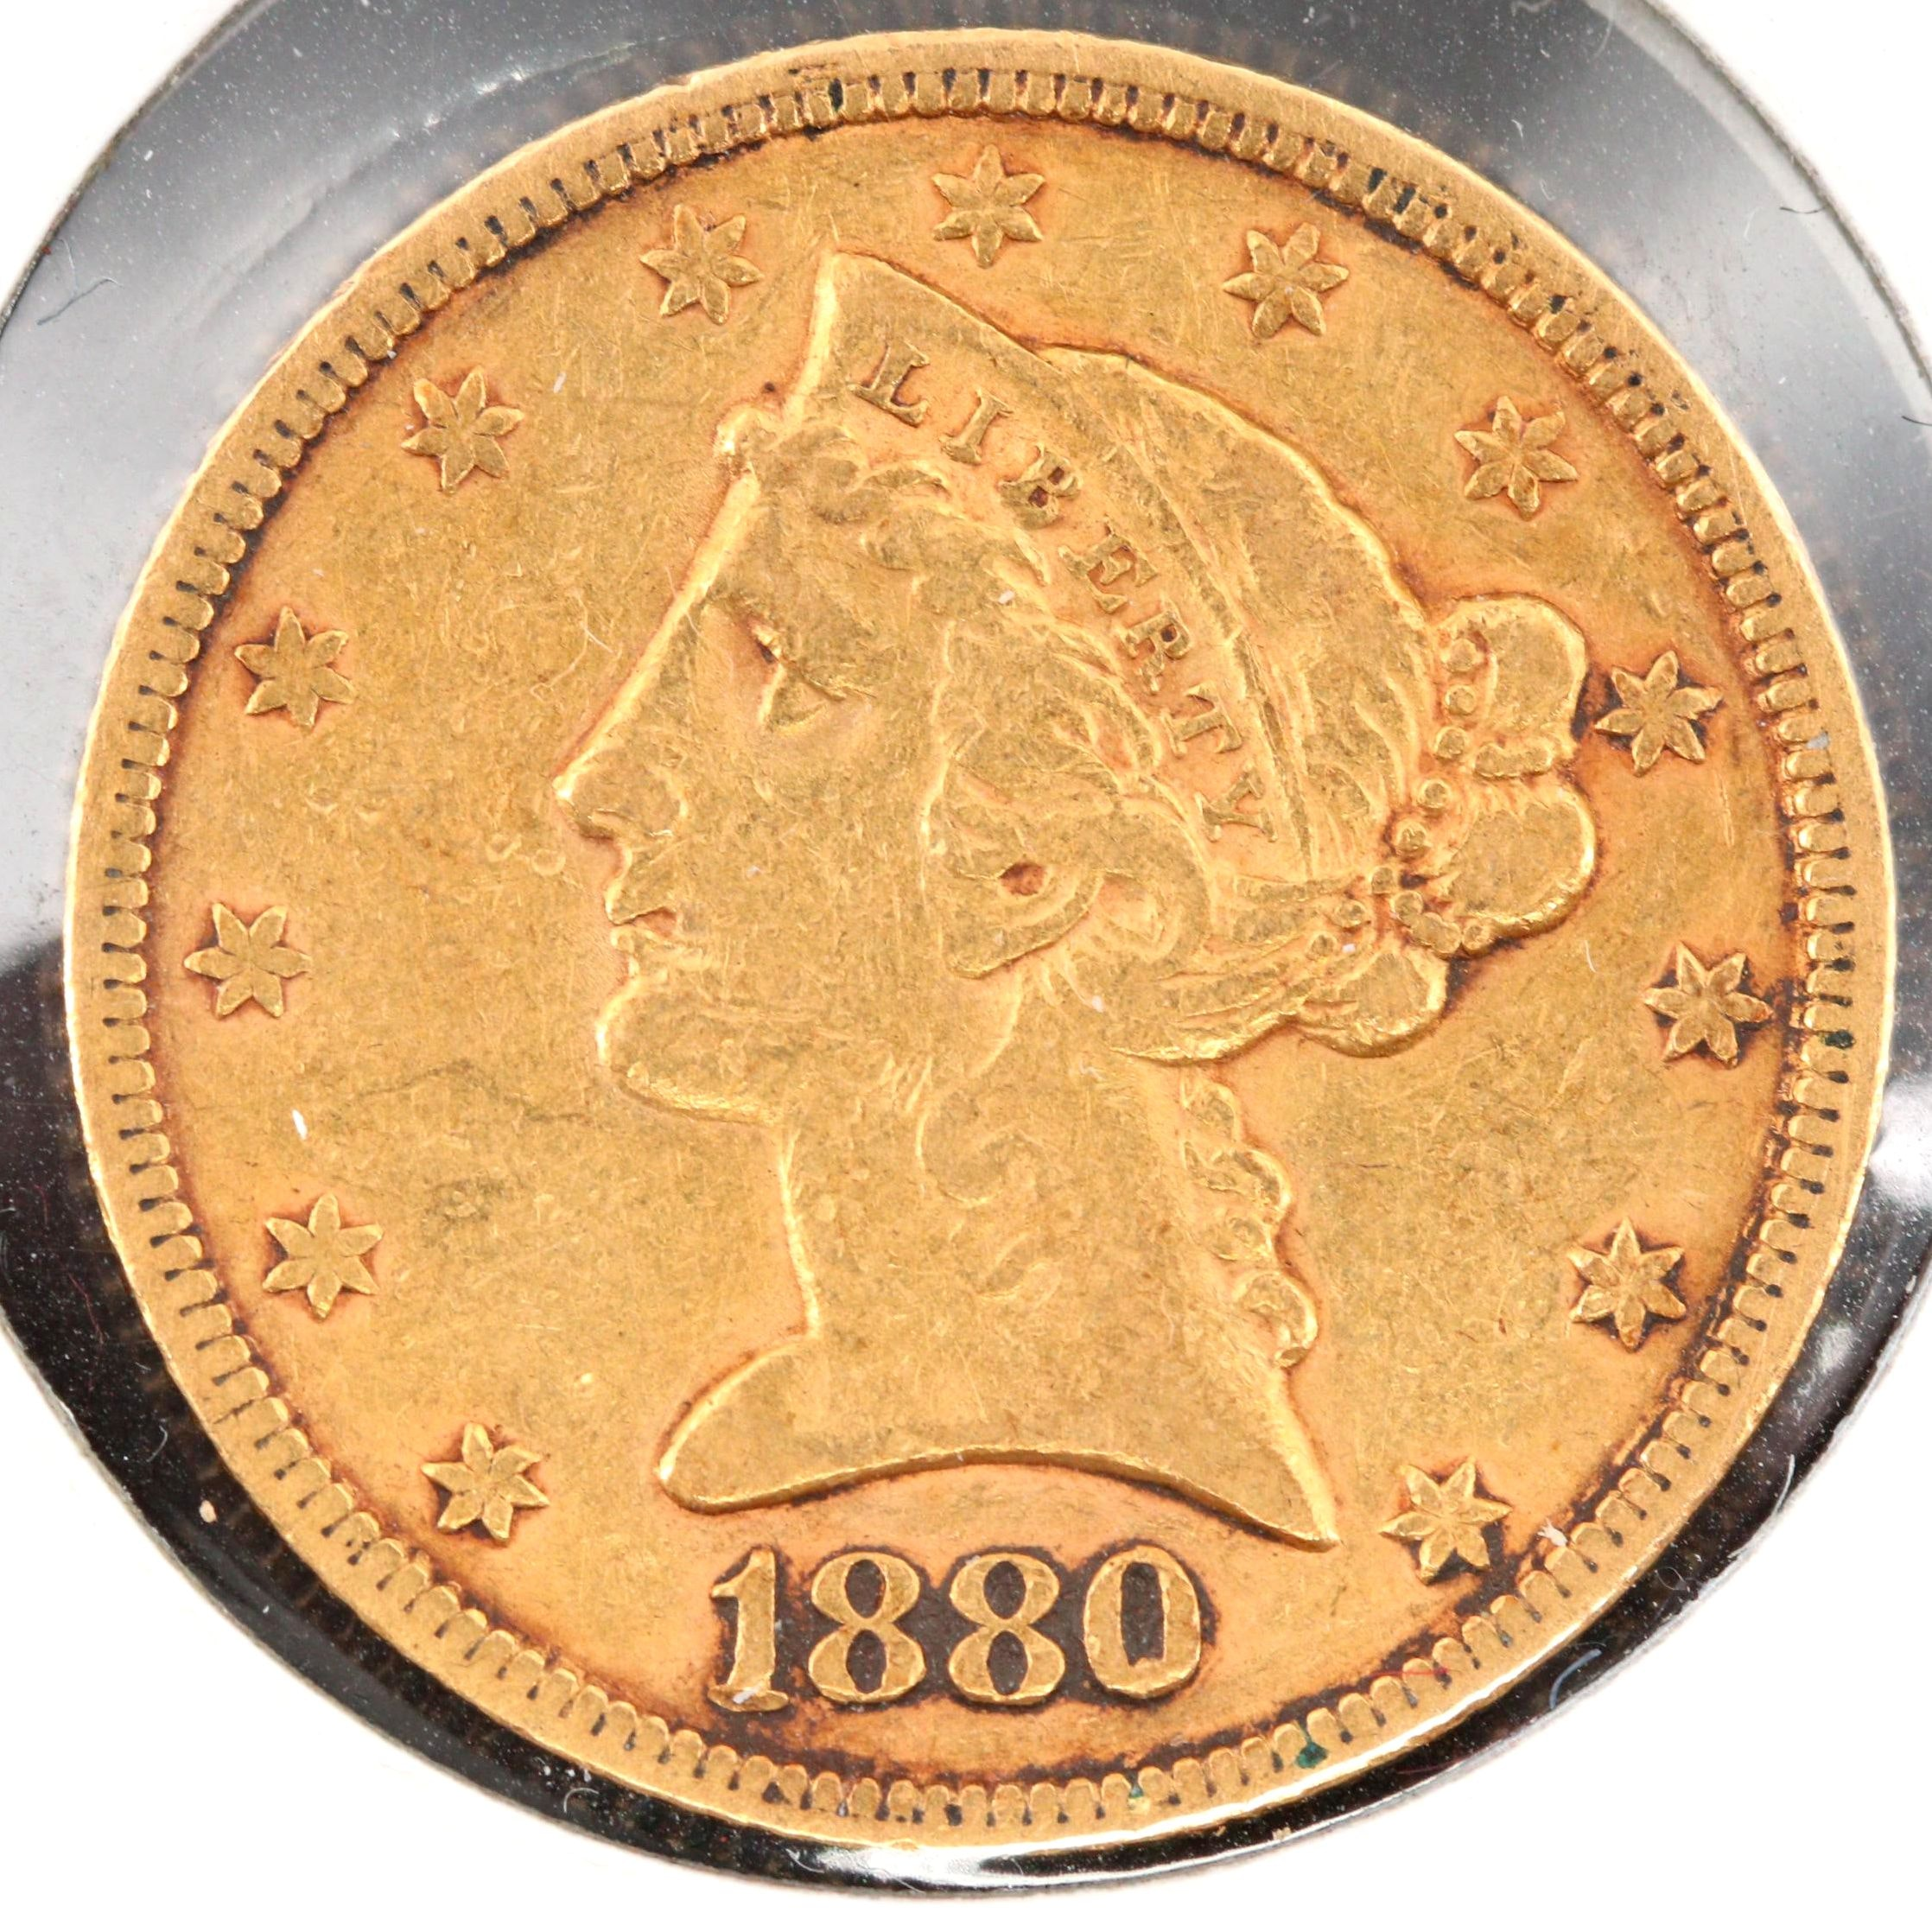 1880 Liberty Head $5 Half Eagle Gold Coin